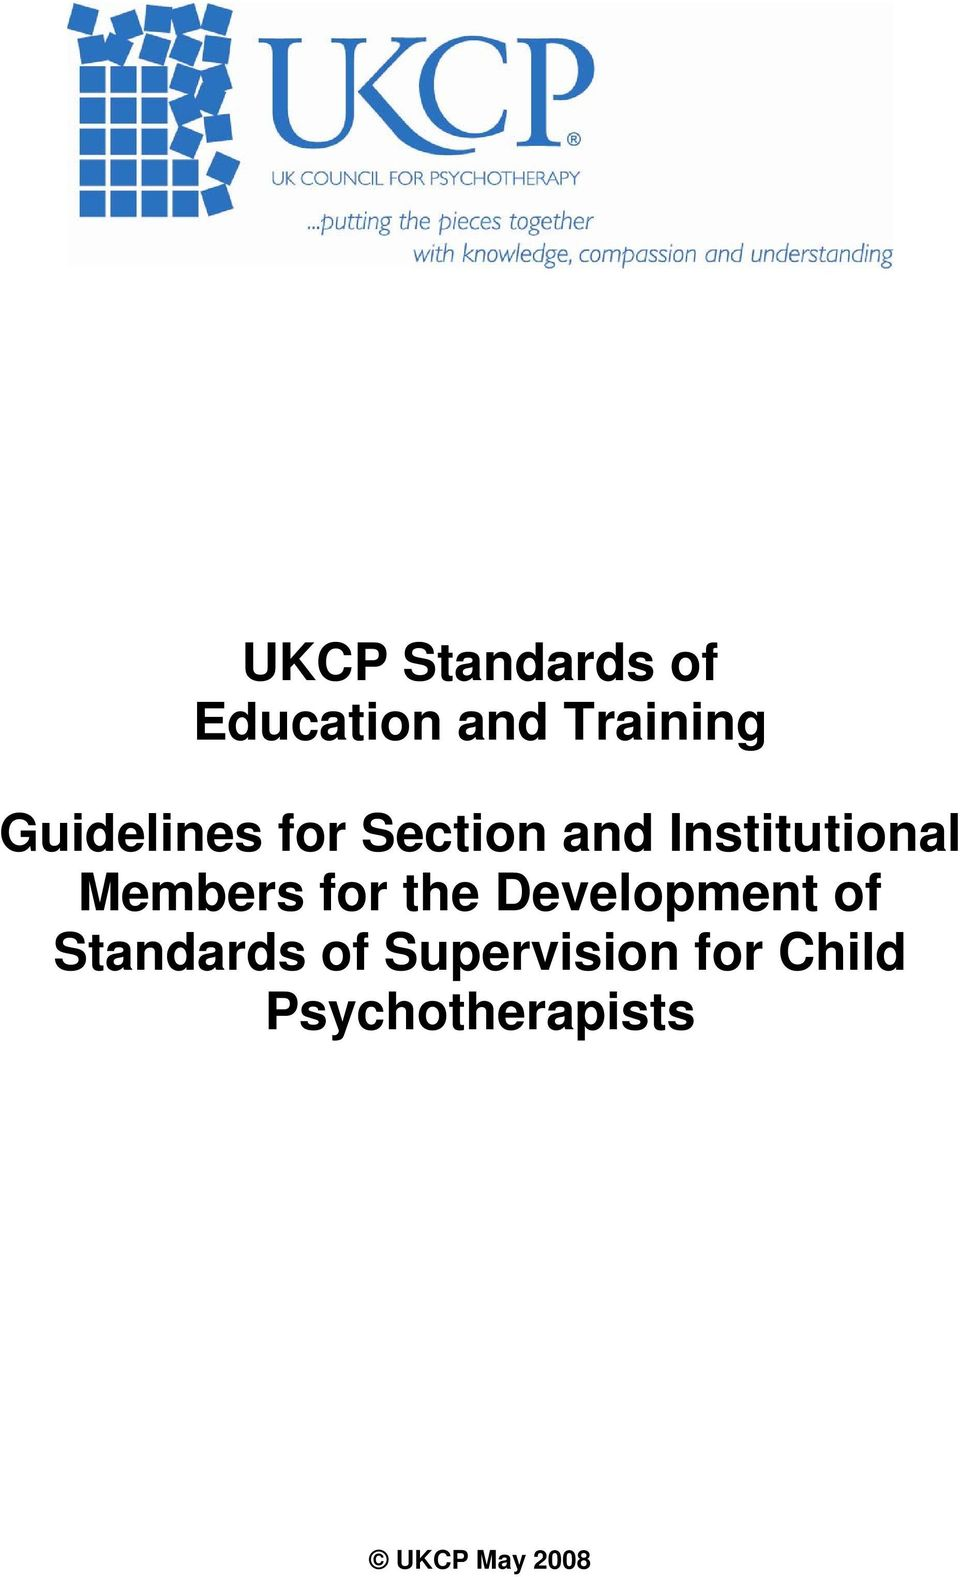 Members for the Development of Standards of